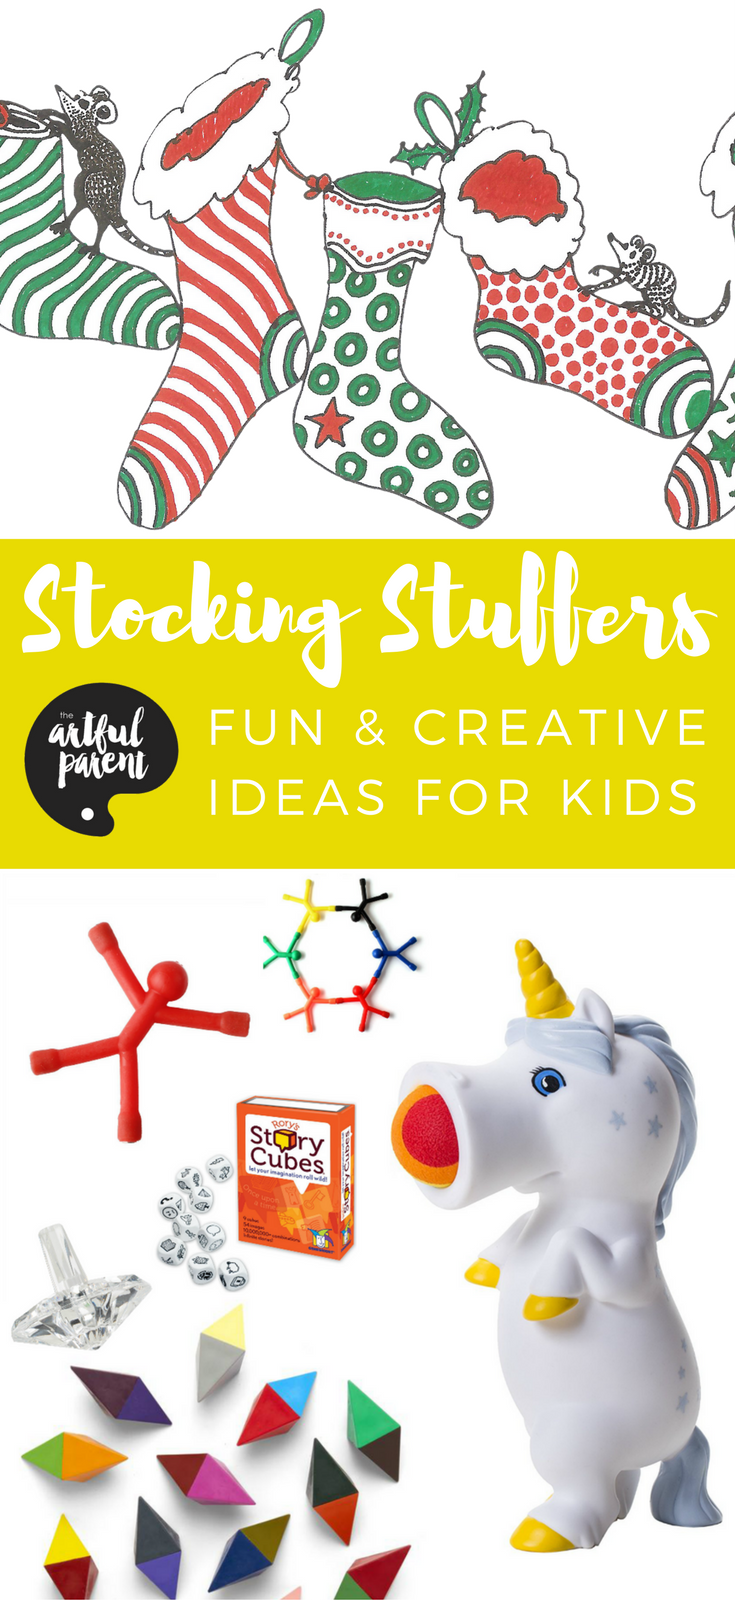 Stocking Stuffers for Kids - 27 Fun & Creative Ideas Kids Will Love